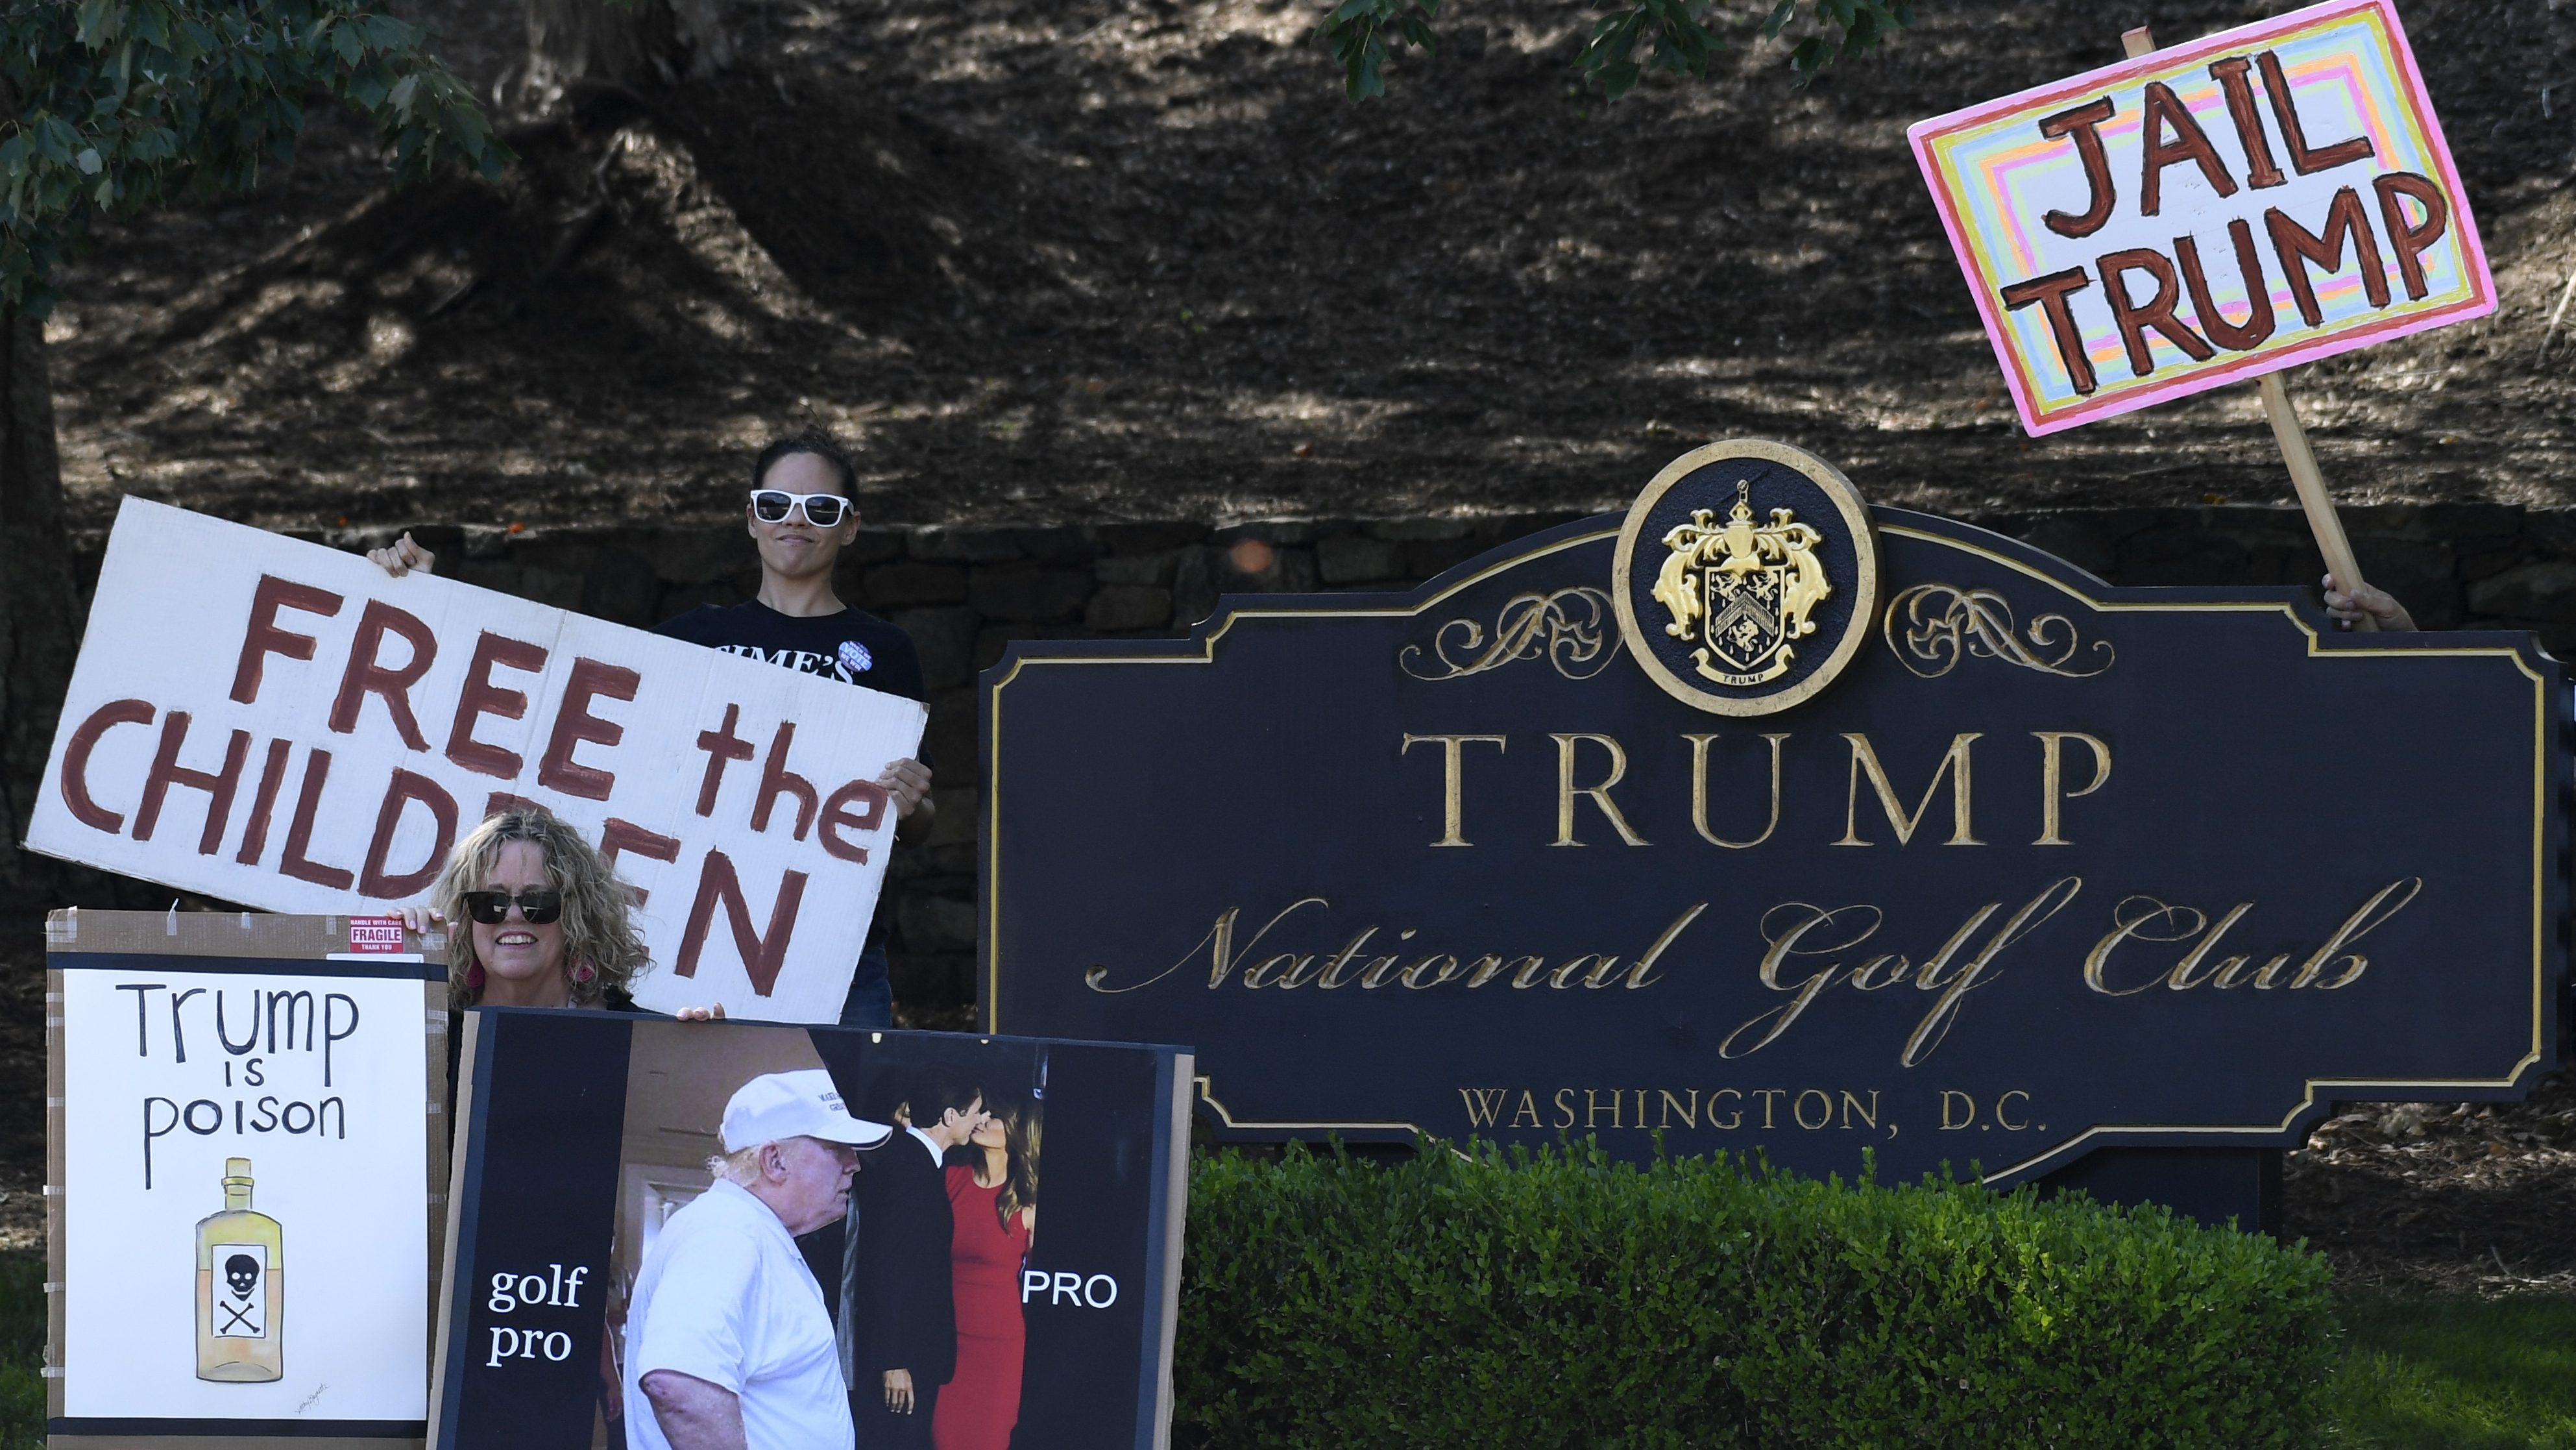 Protesters outside the Trump National Golf Club in Sterling, Virginia, where the gala dinner will be held.